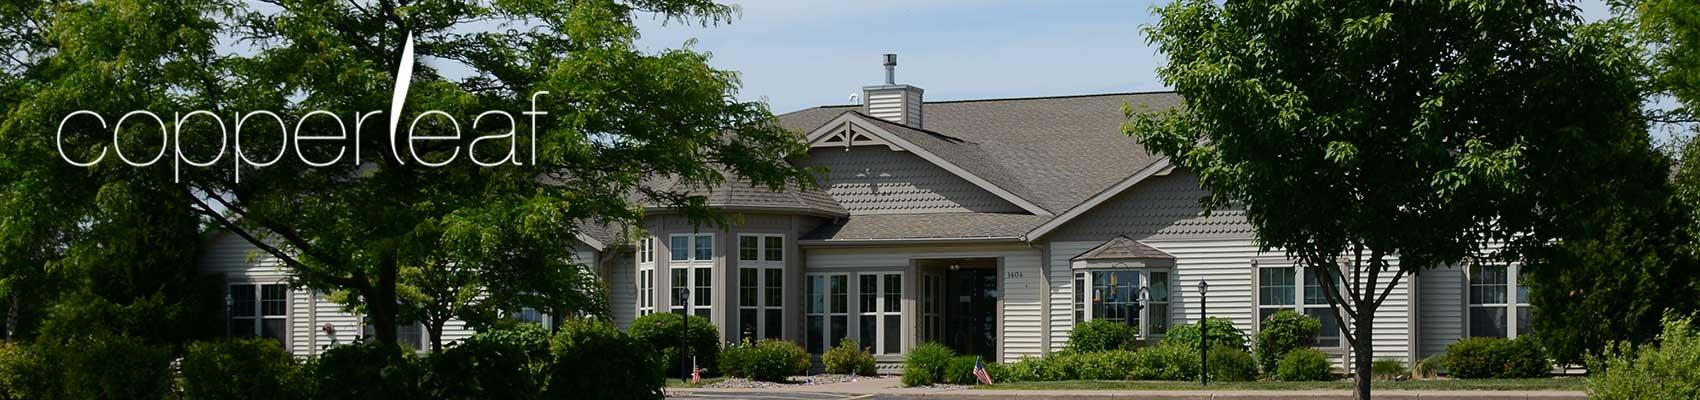 Assisted Living assisted living facilities Ringle Wisconsin Marathon County